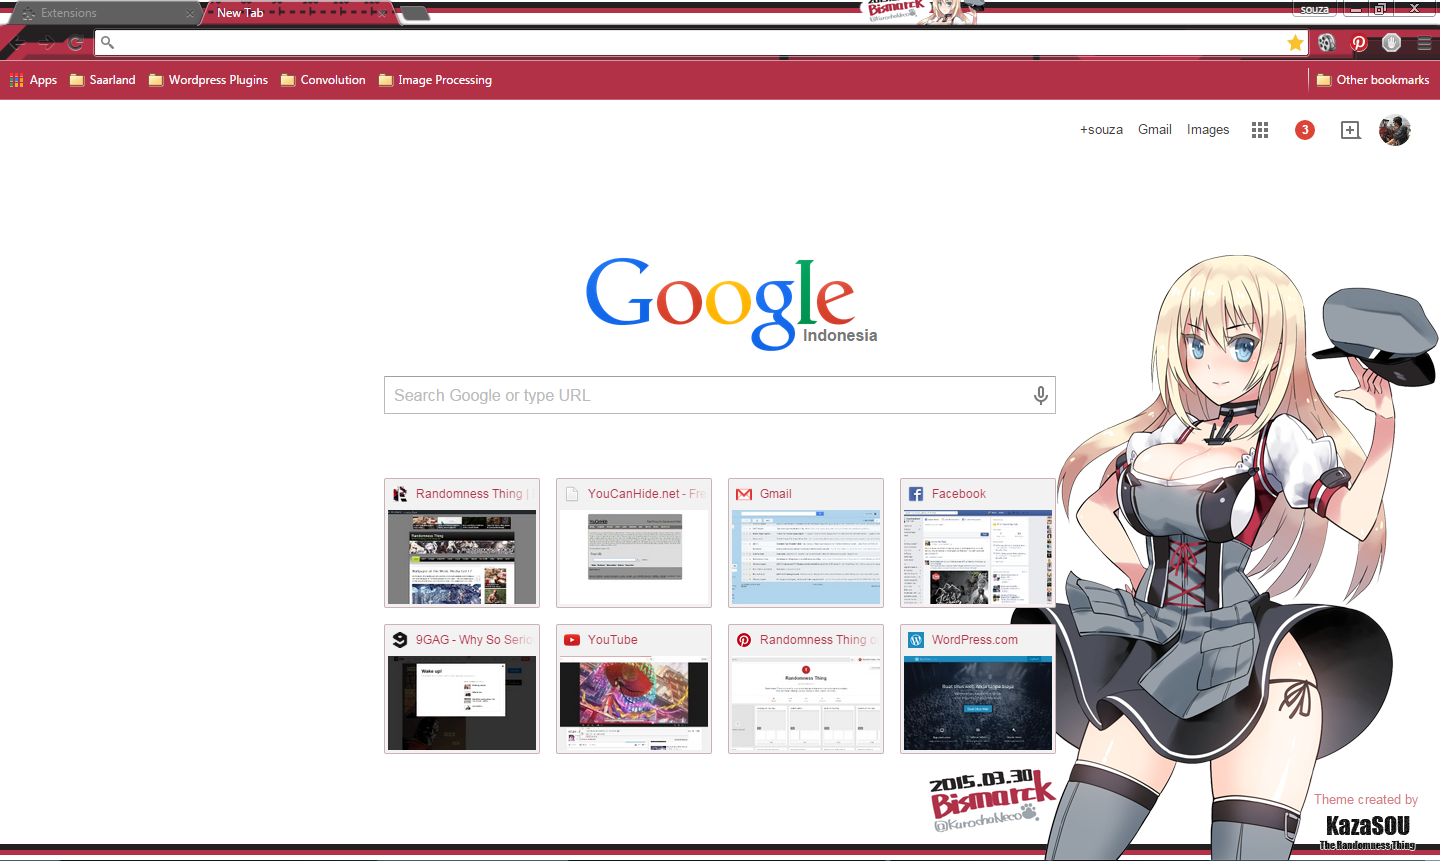 Google themes today - Bismarck From Kantai Collection Kancolle Strikes Again With Another Google Chrome Theme For Today